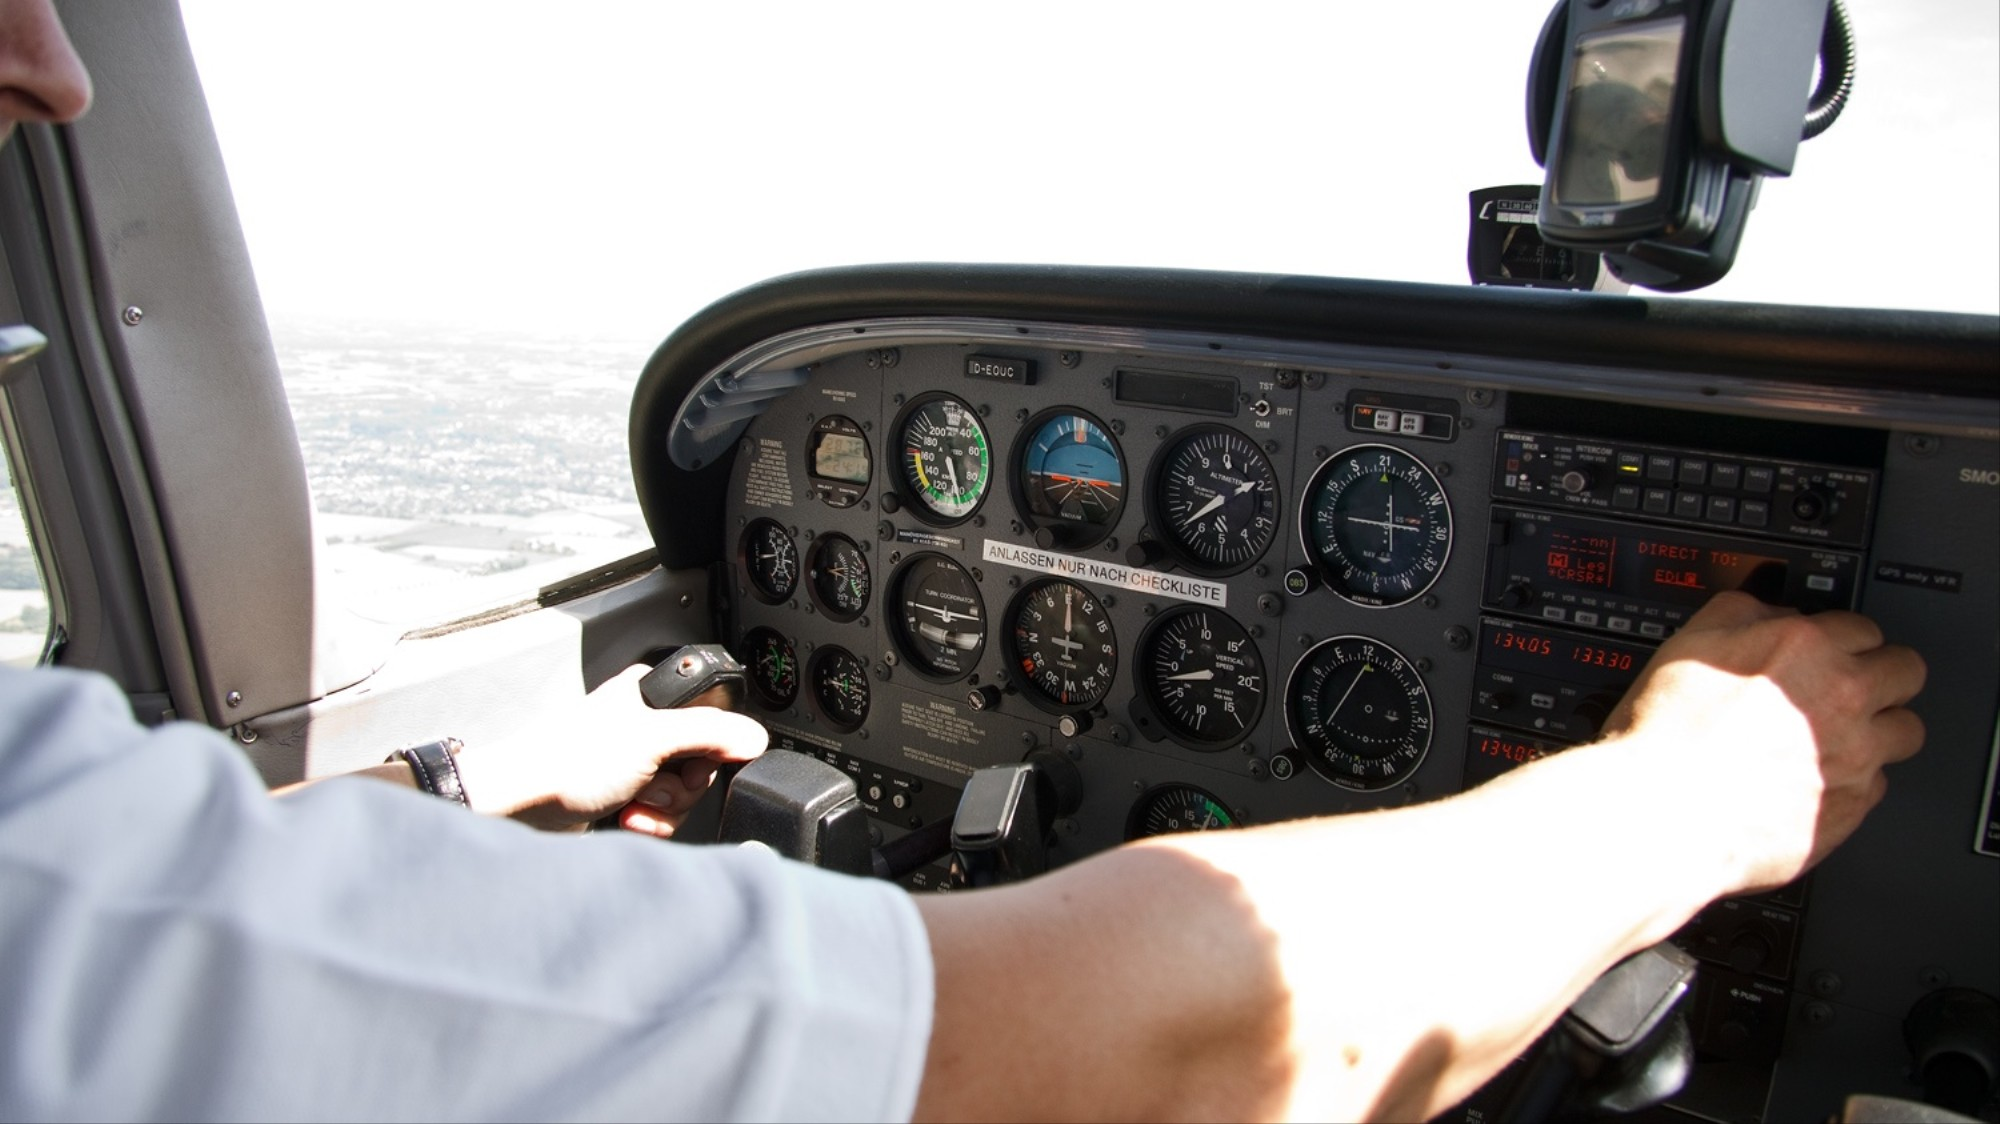 This 17 Year Old Built a Full-Scale Cessna Cockpit Simulator